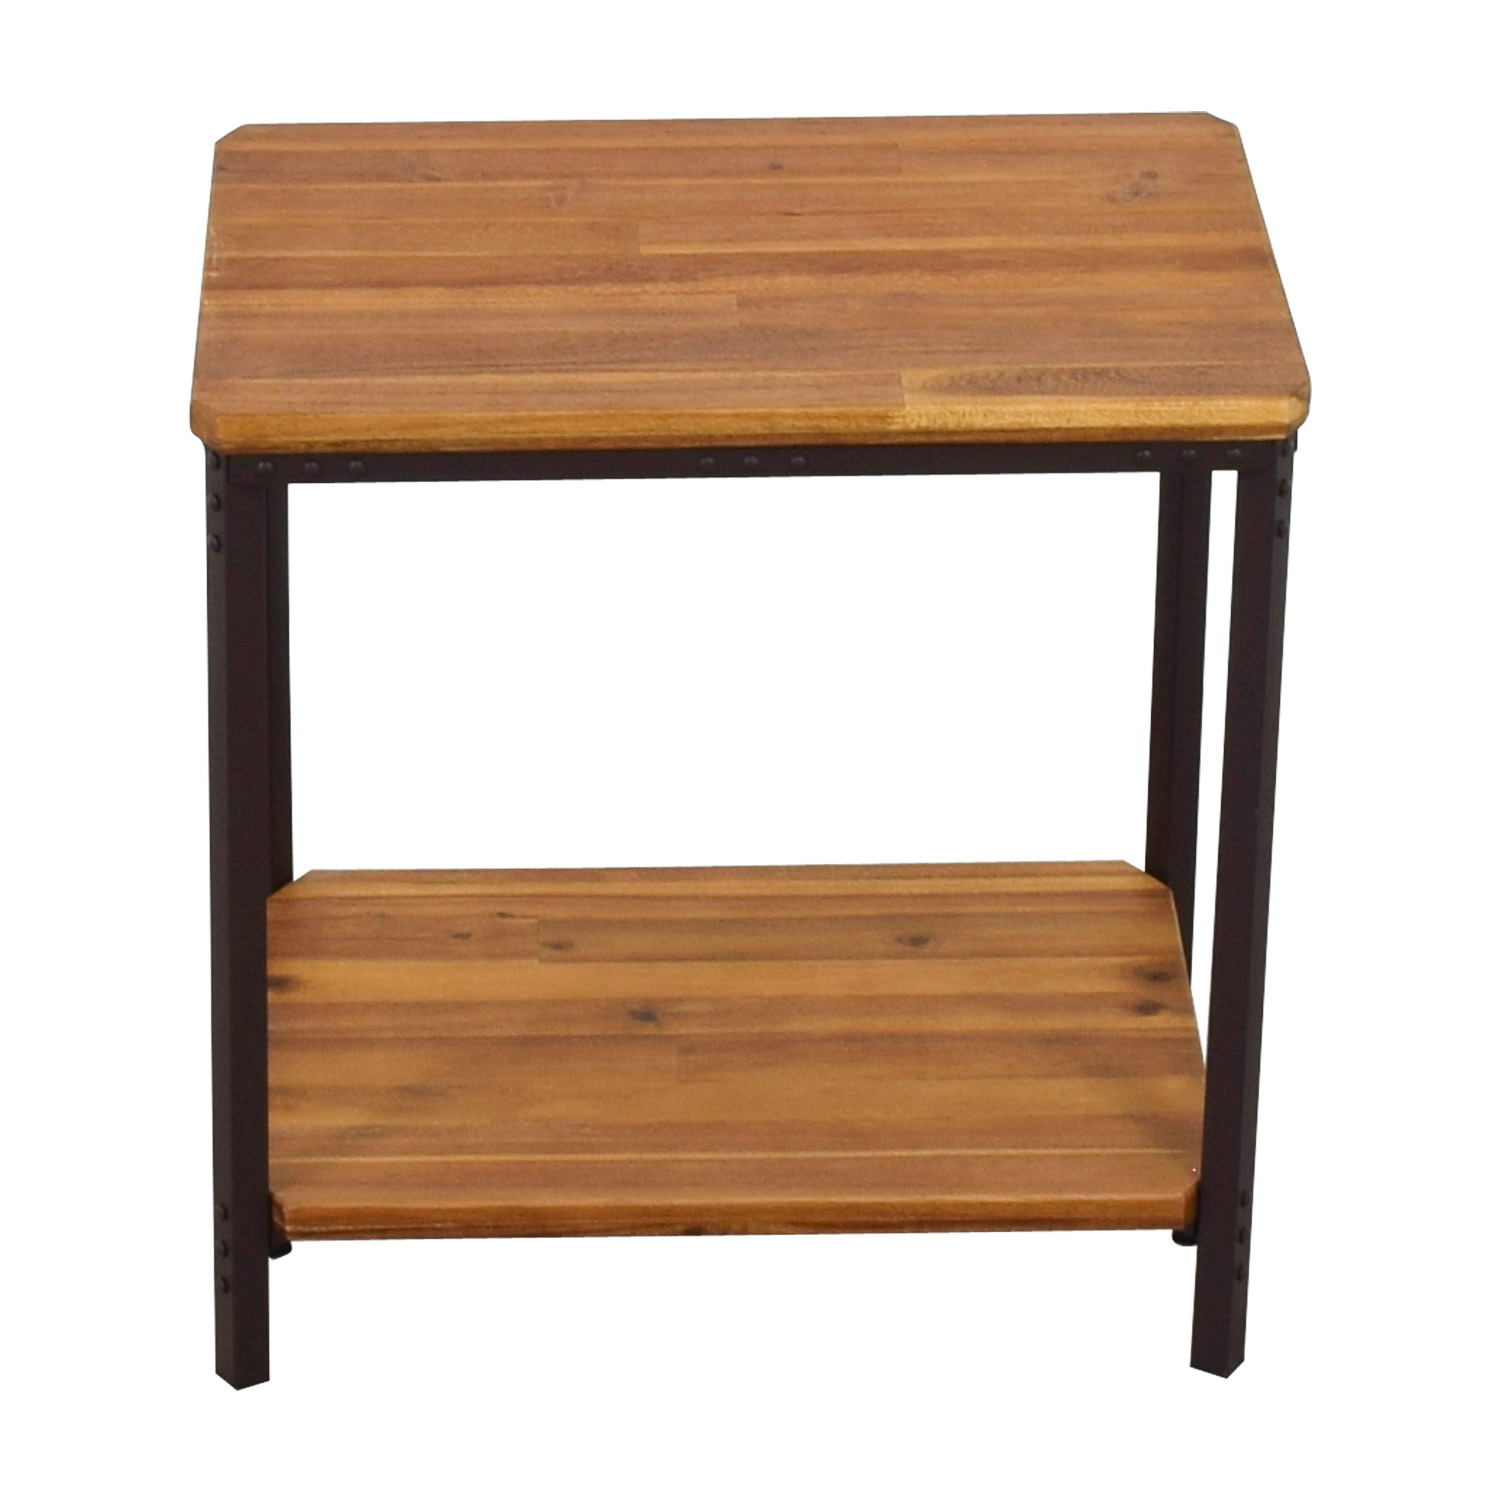 85 off christopher knight home christopher knight home ronan wood rustic metal end table tables. Black Bedroom Furniture Sets. Home Design Ideas